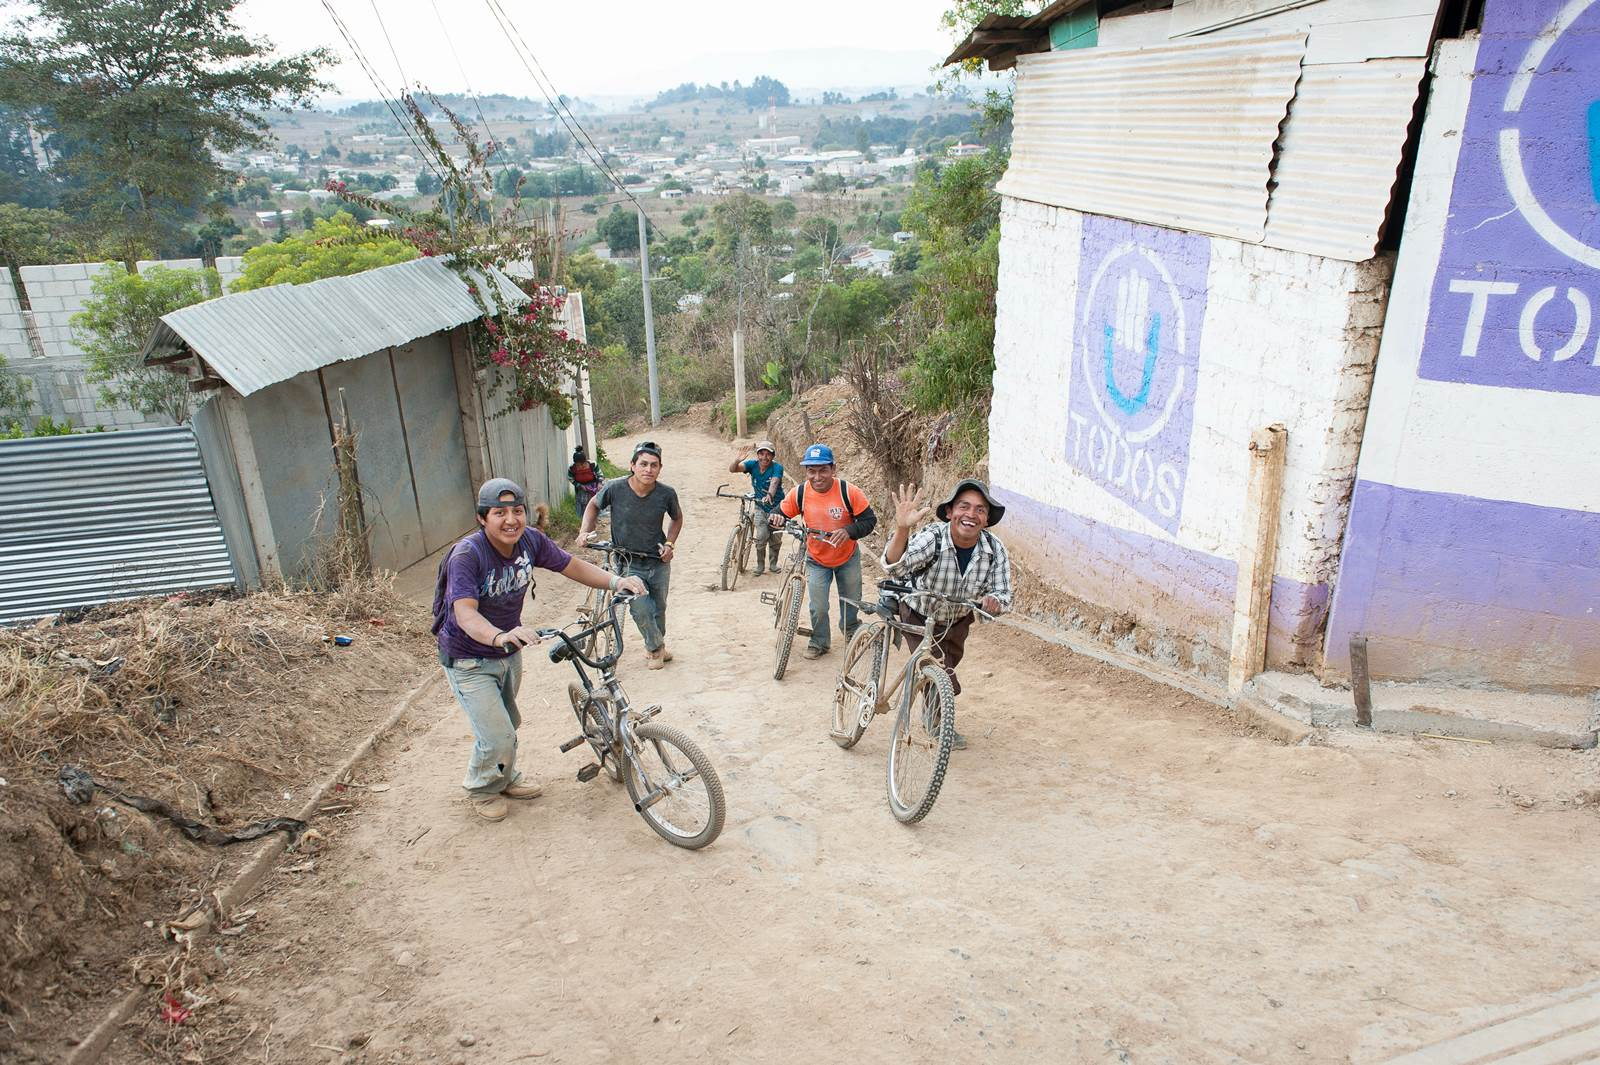 1540 LONG WAY HOME_2016_Guatemala_photographers without borders_ronbwilson_160303_685.jpg